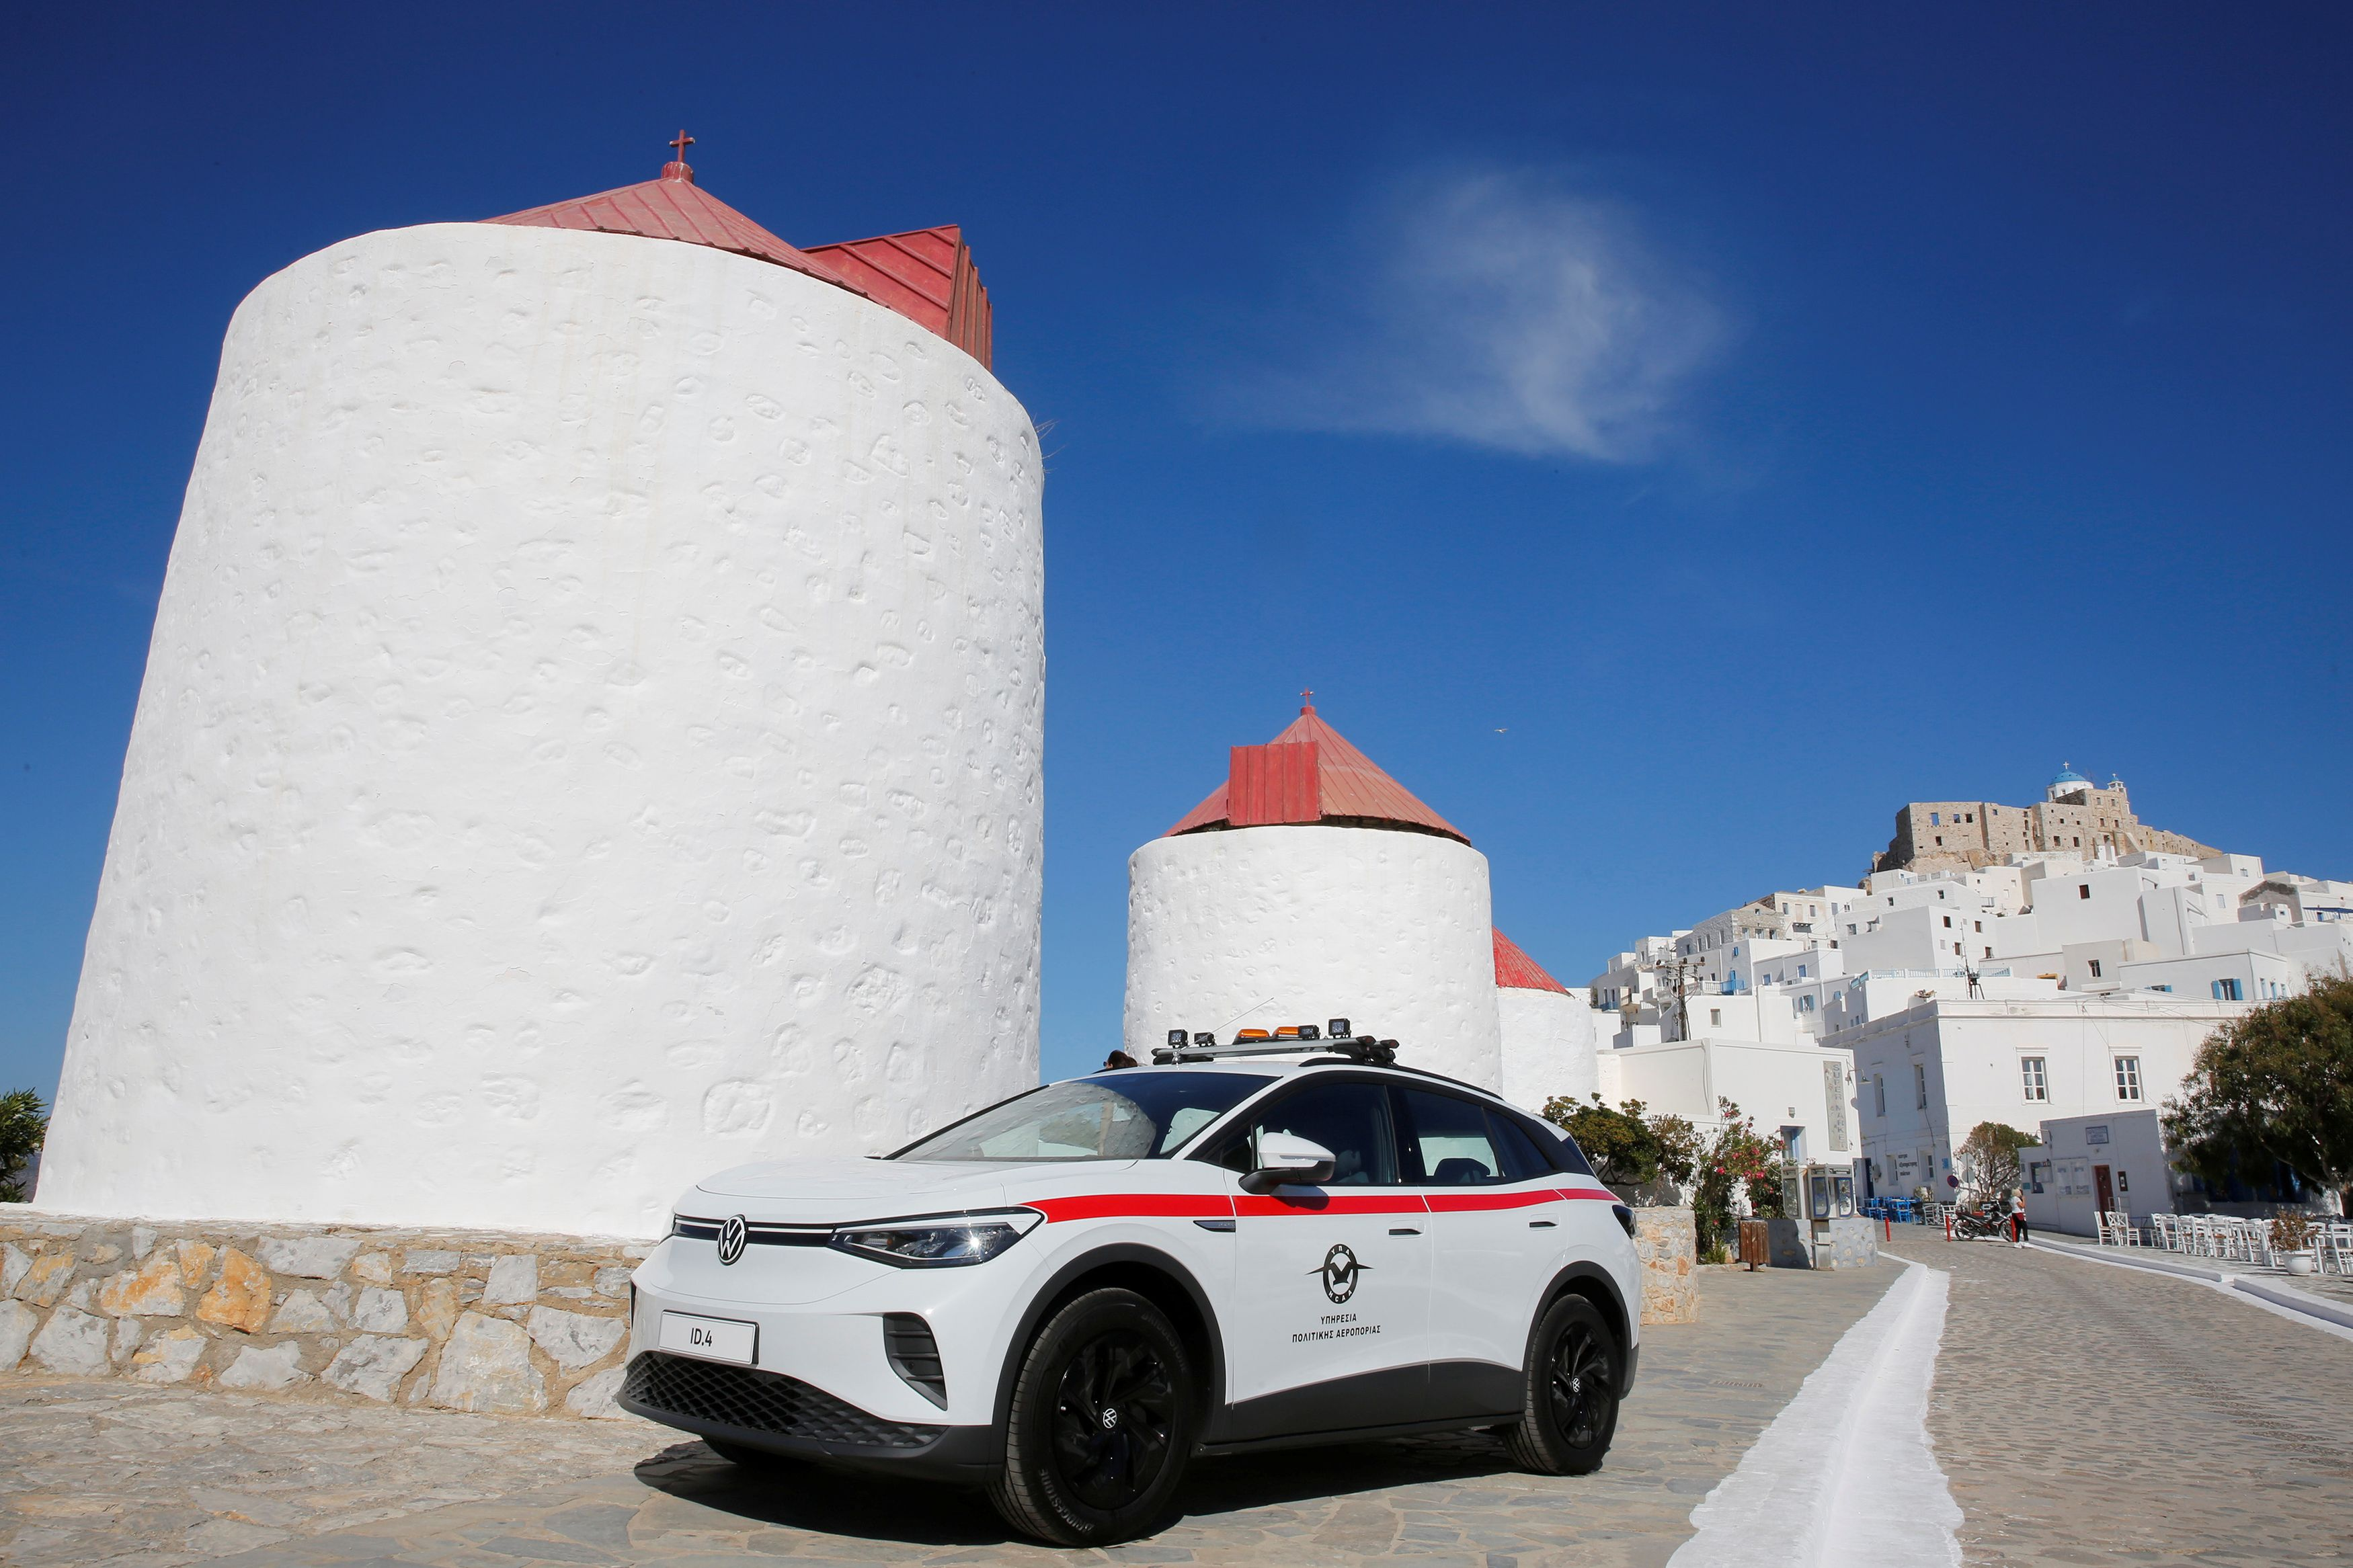 A Volkswagen ID.4 electric cars is seen during a delivery ceremony of service cars and chargers to the police and the port authority of the island of Astypalea, Greece, June 2, 2021. [Alexandros Vlachos/Pool via Reuters]